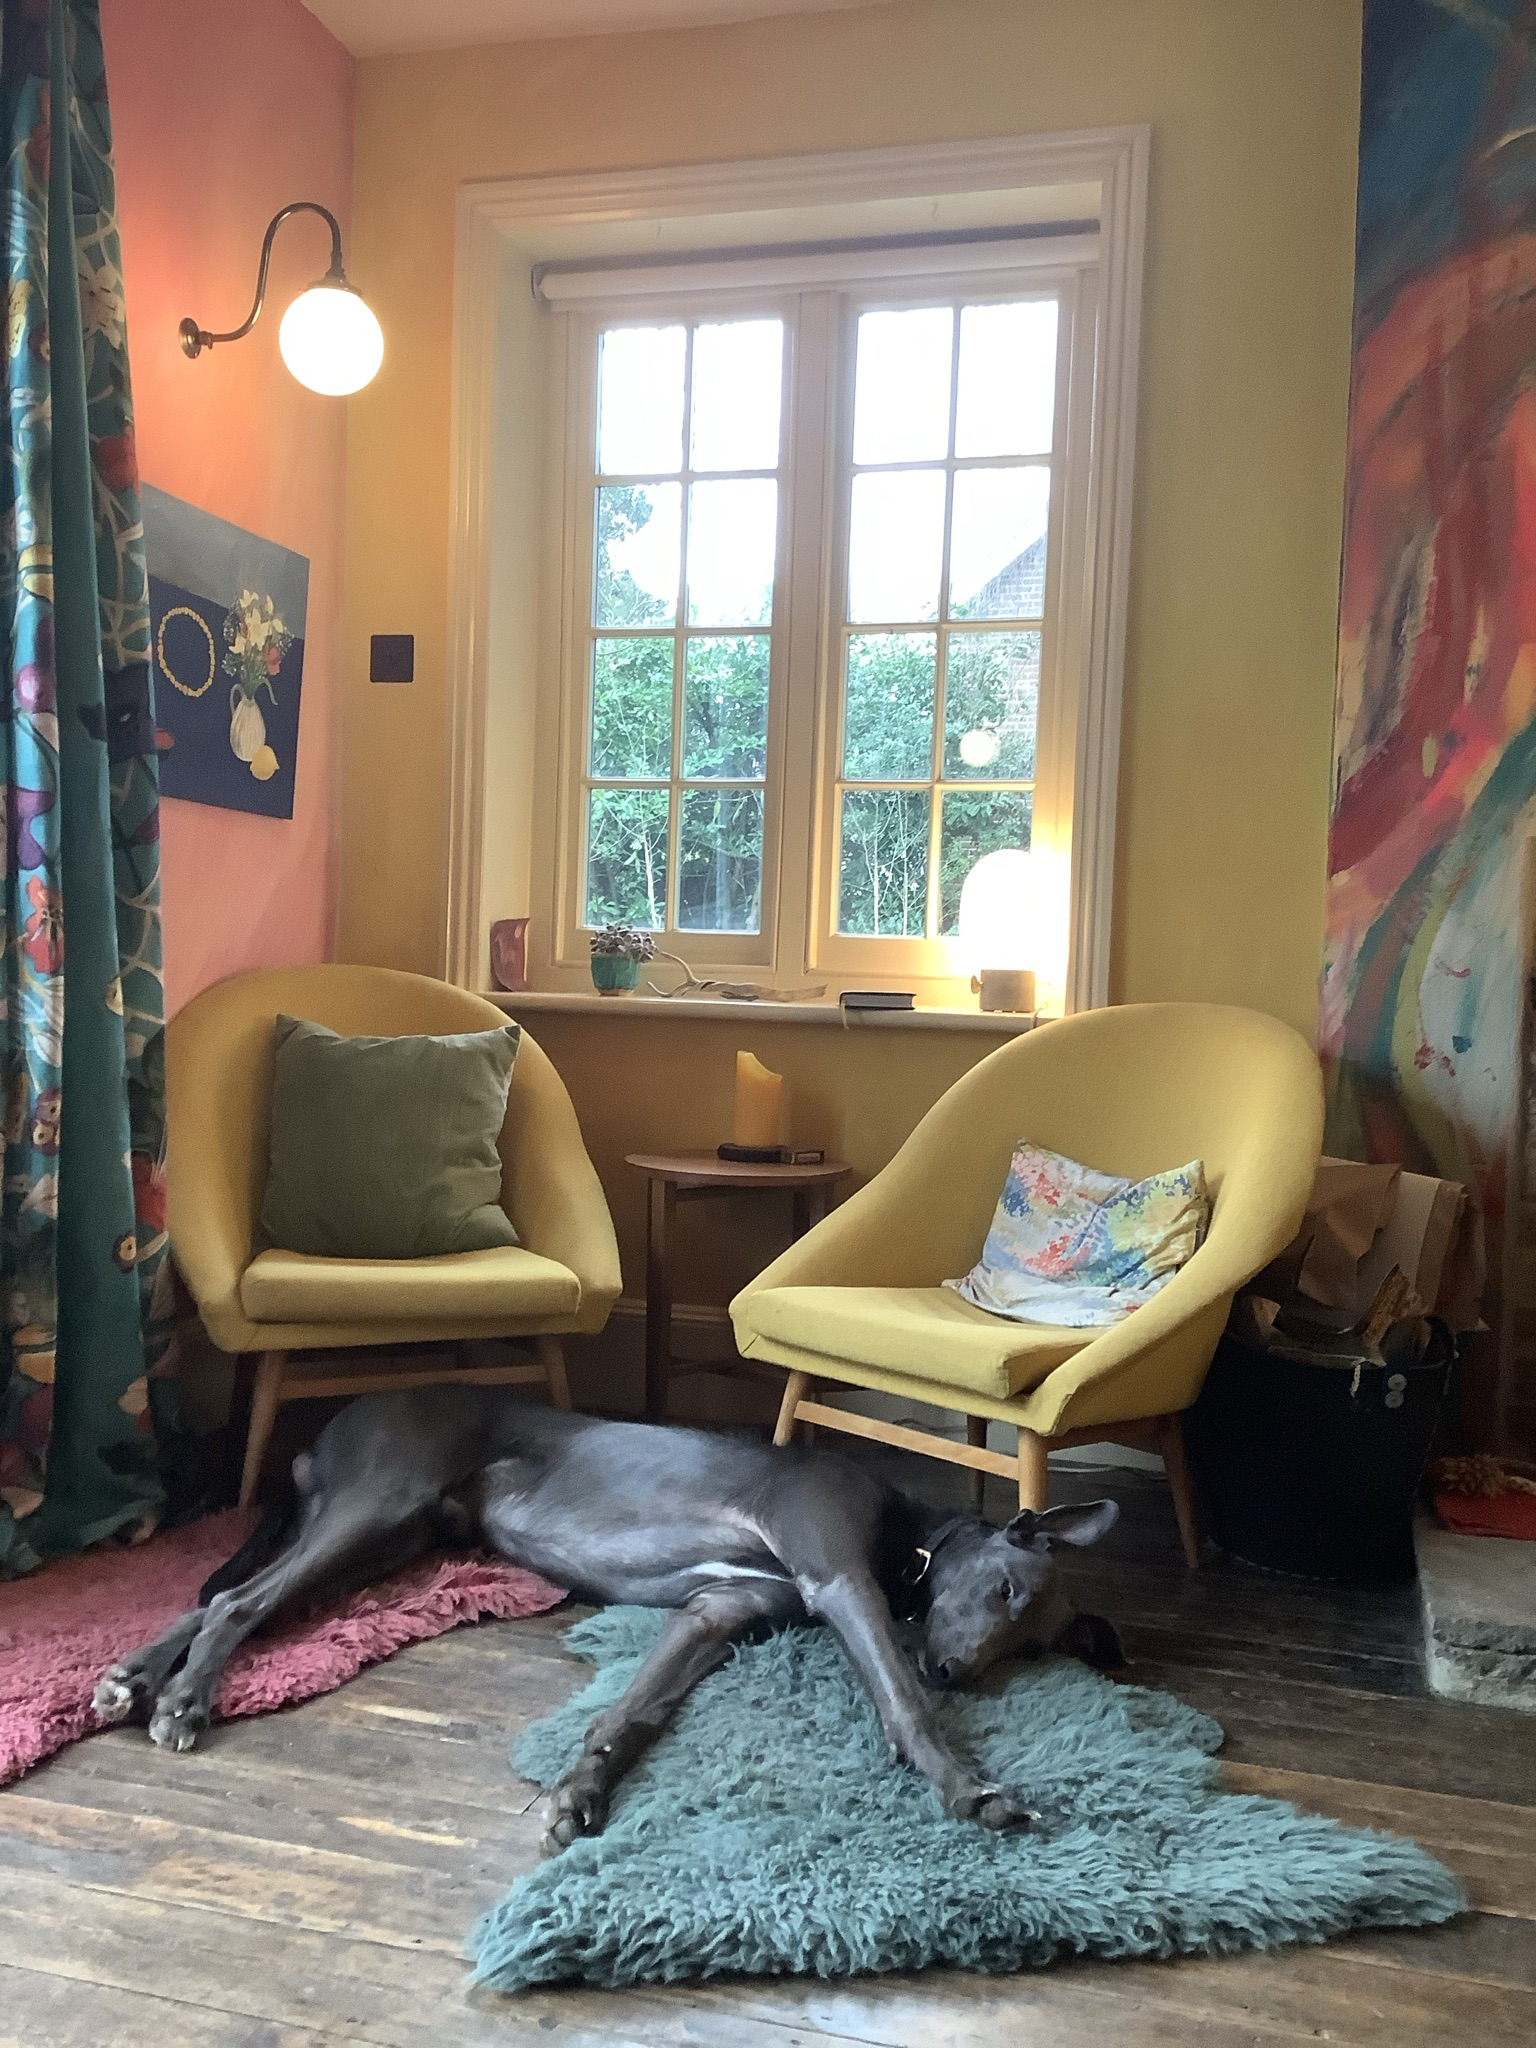 A Home for Home Education programme mentored by Sukha Clark